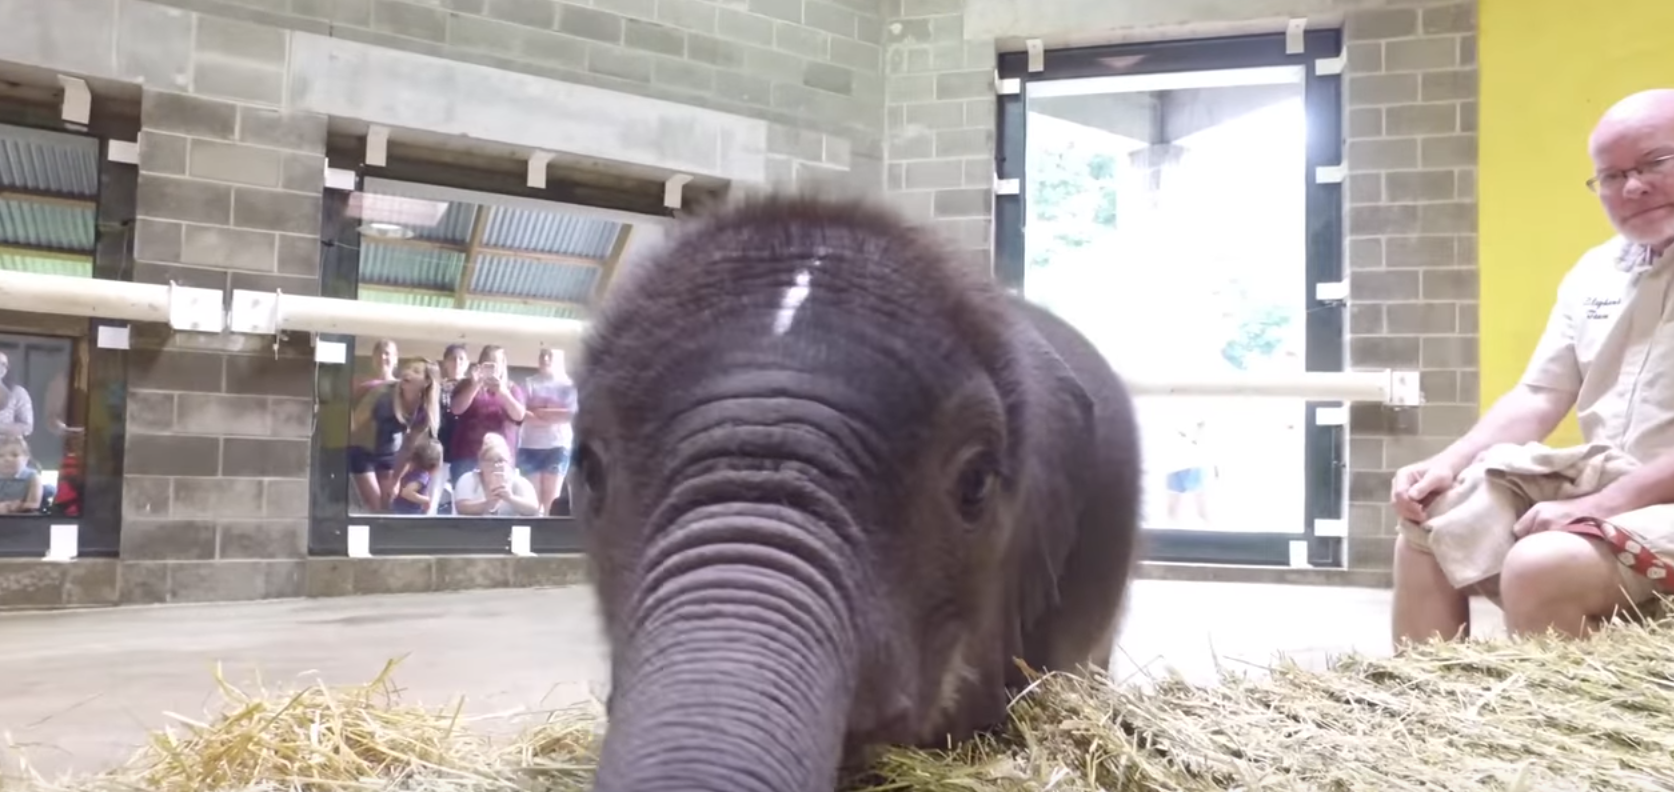 The elephant calf is viewed by Pittsburgh Zoo visitors for the first time on Friday.